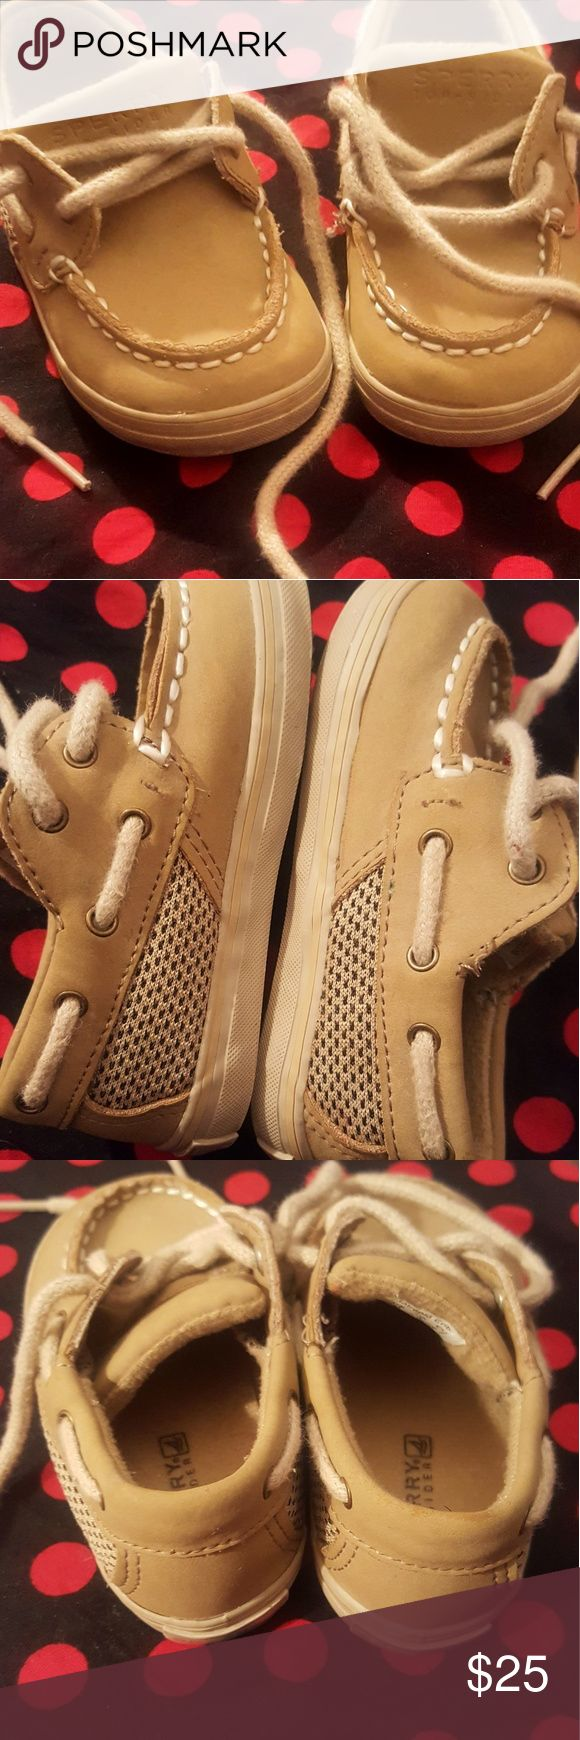 Baby Sperry's Like new! In Great condition! Sperry Top-Sider Shoes Dress Shoes